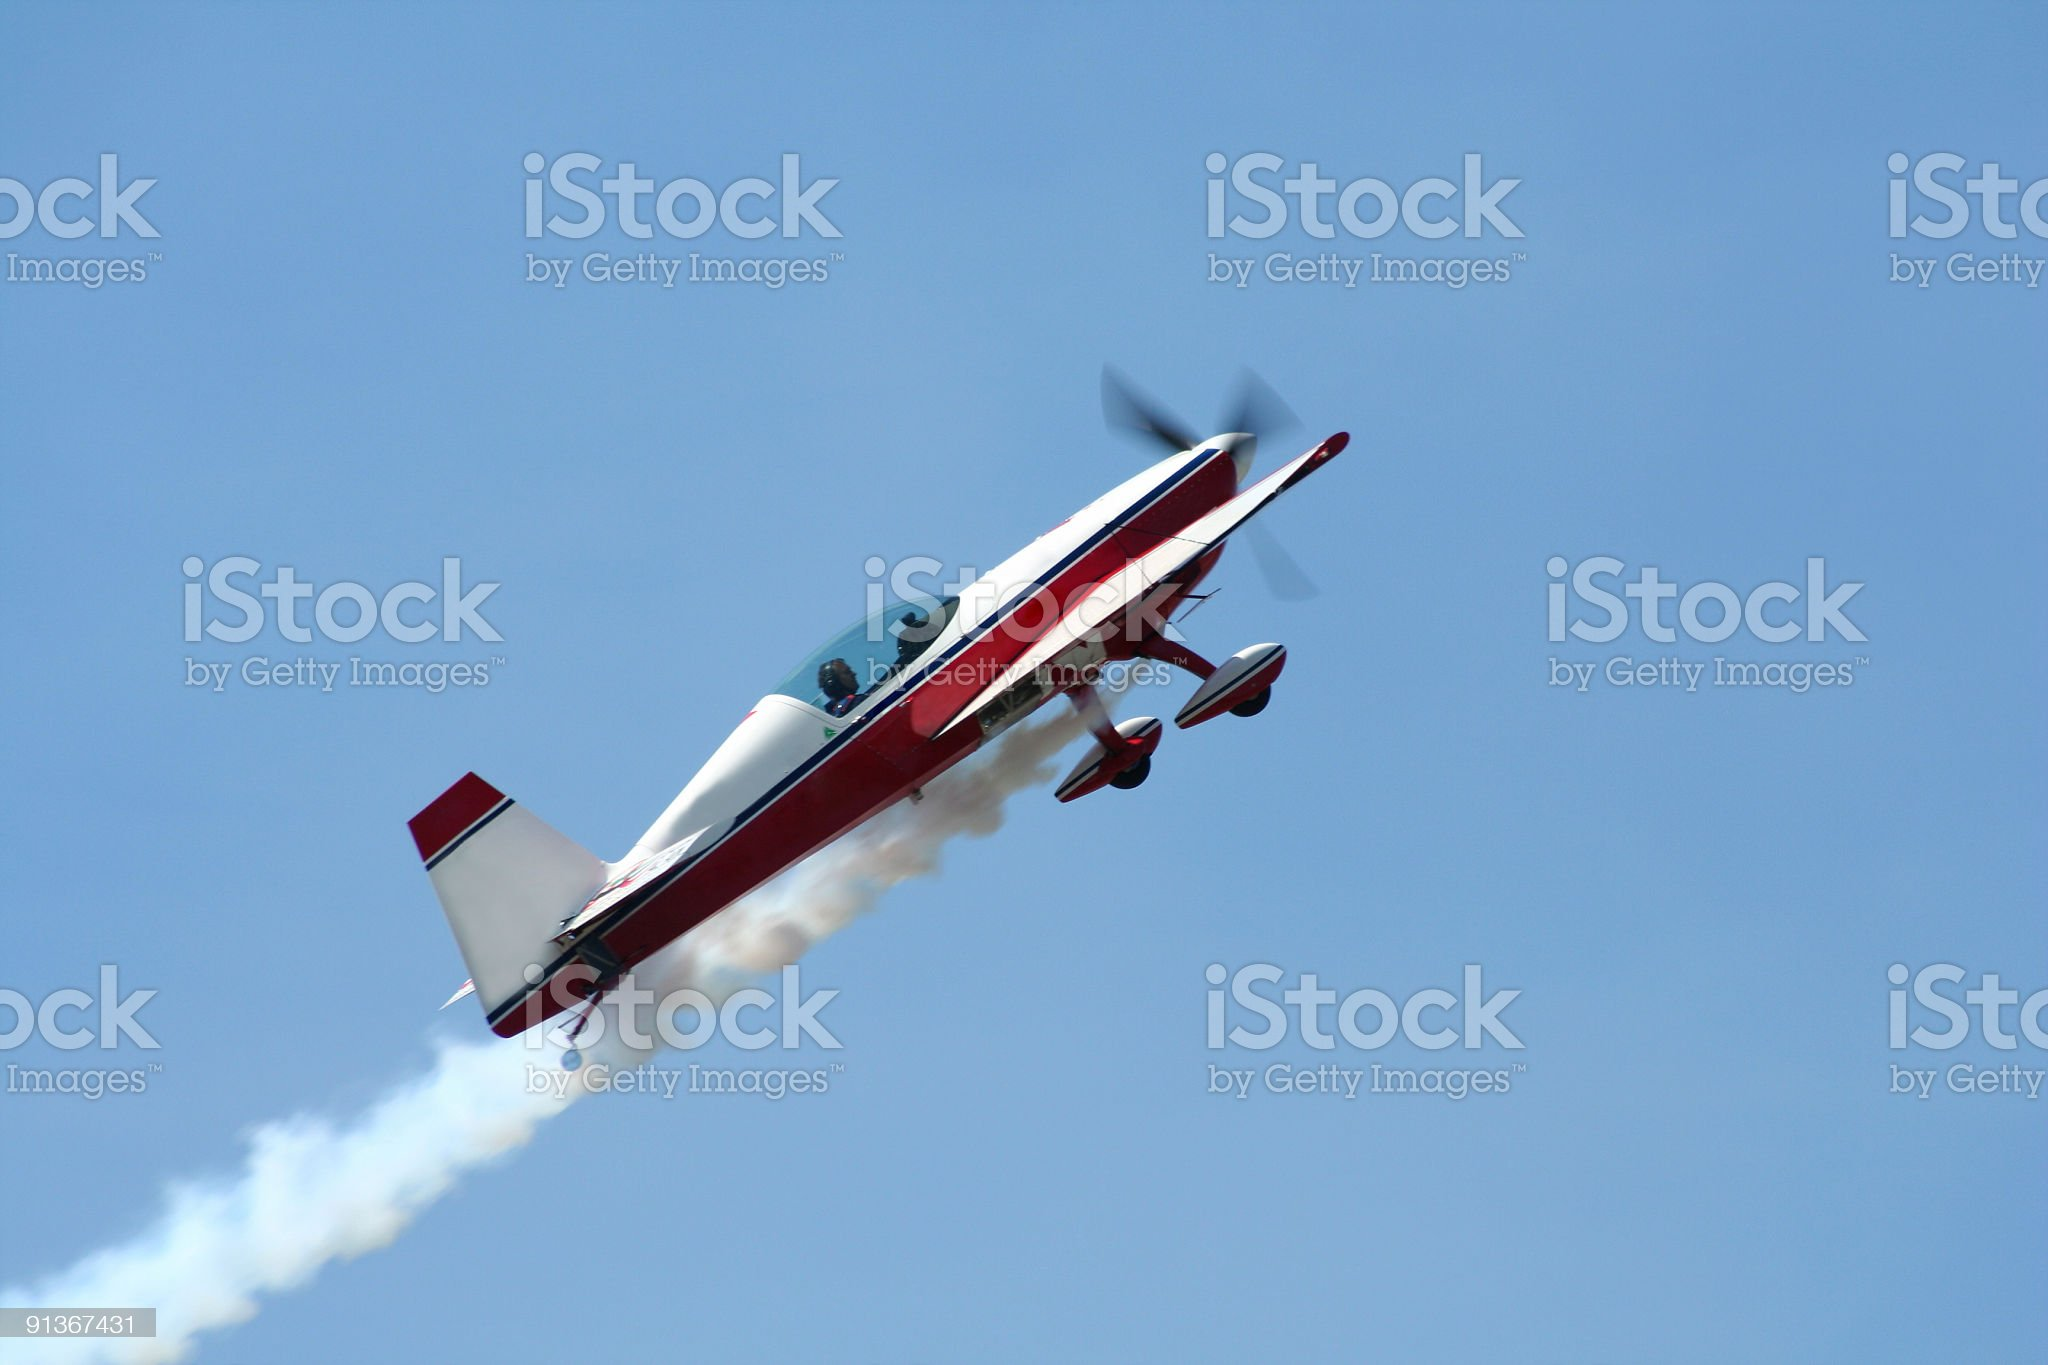 Airplane on the blue sky royalty-free stock photo